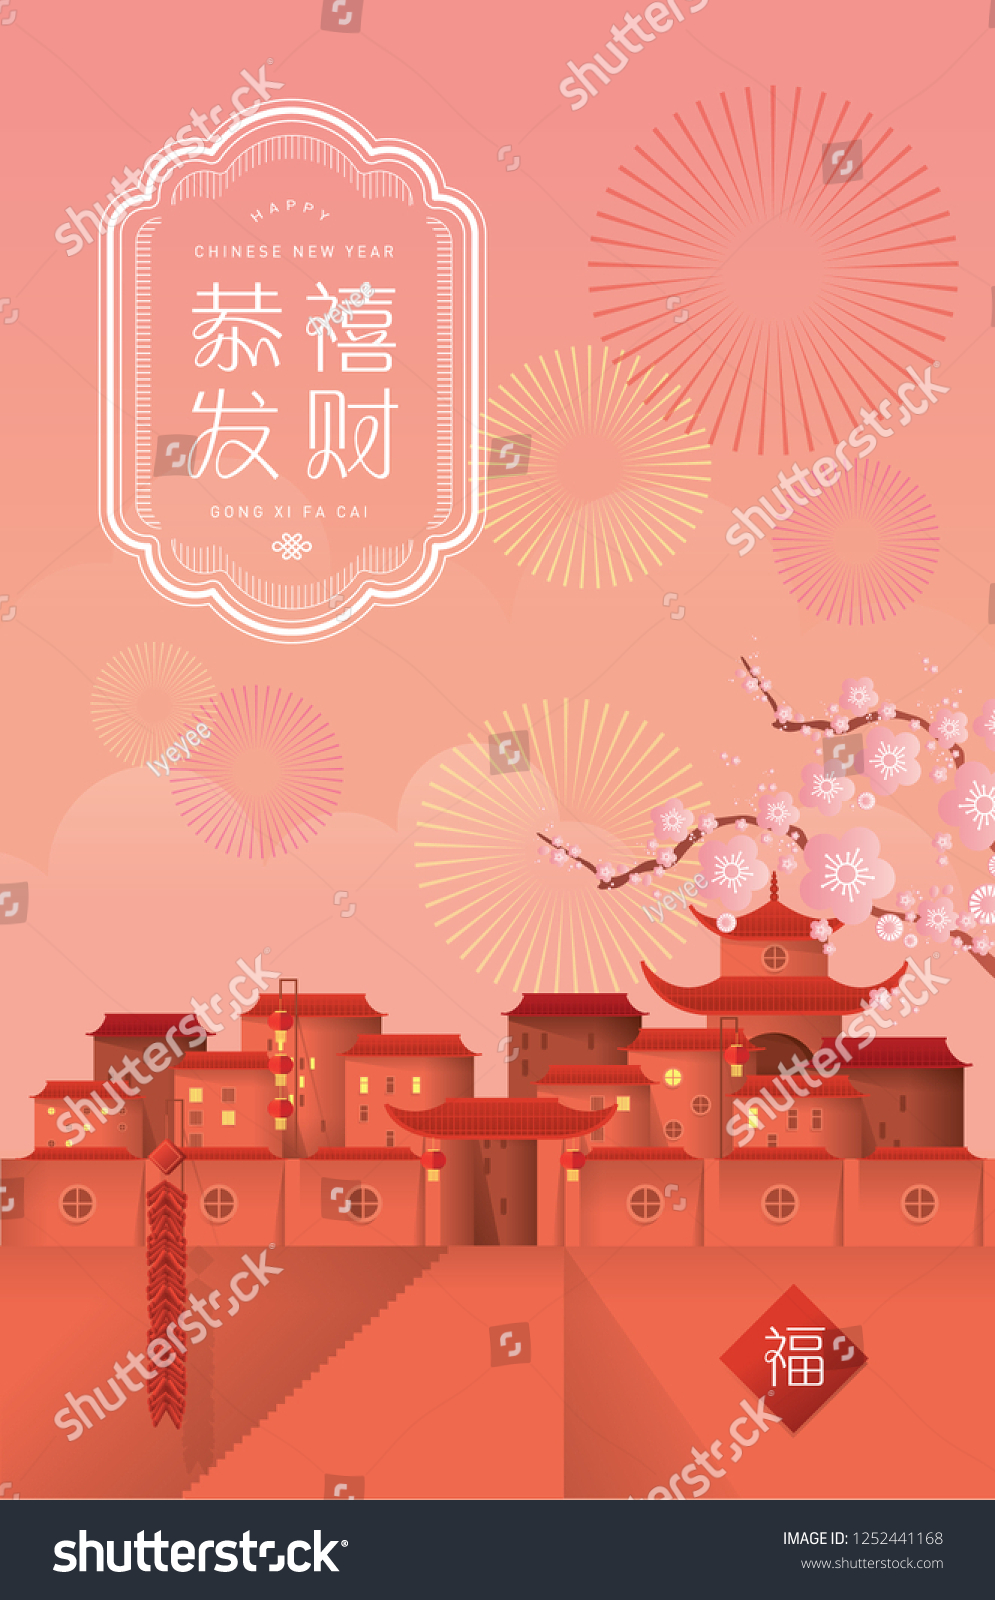 Chinese New Year Greetings Template Vectorillustration Stock Vector